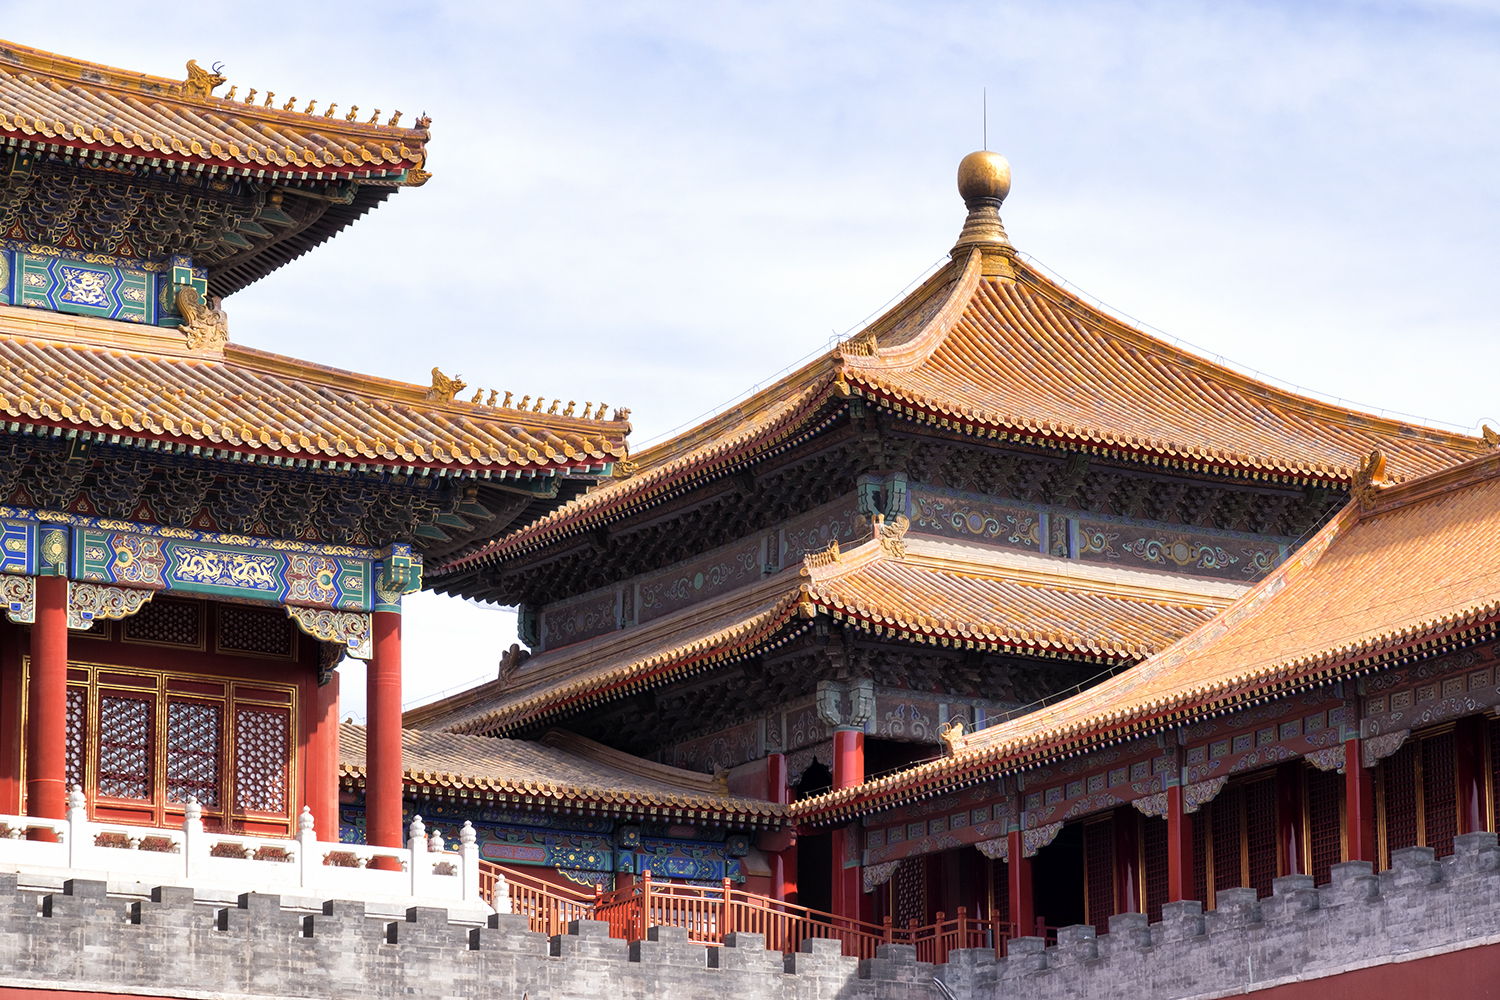 The Meridian Gate, in the Forbidden City